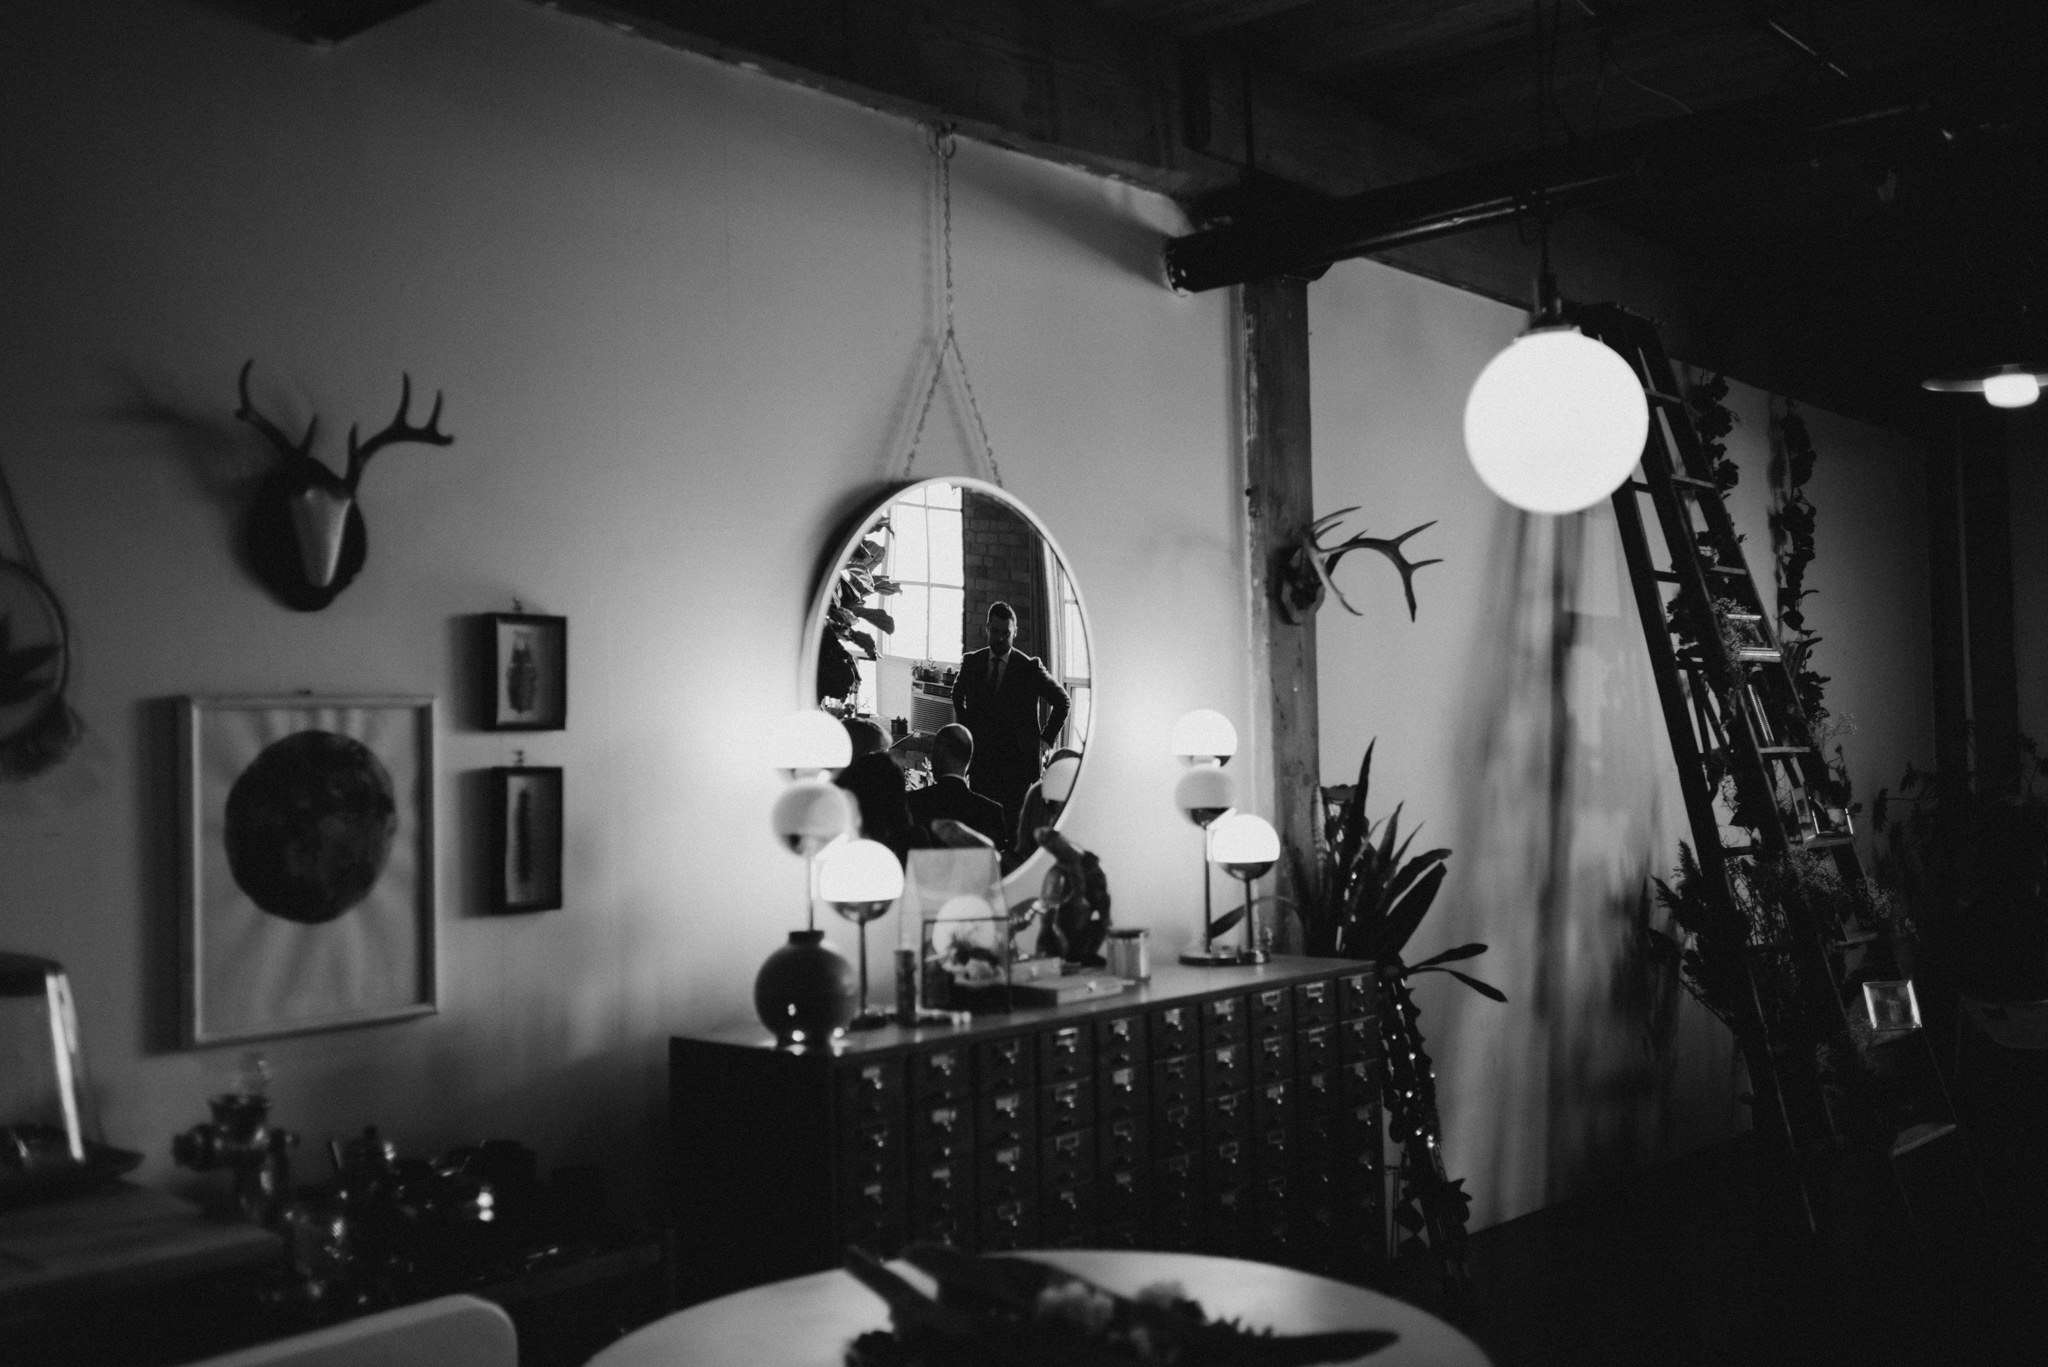 black and white images of groom in reflection of mirror in old loft apartment in Toronto